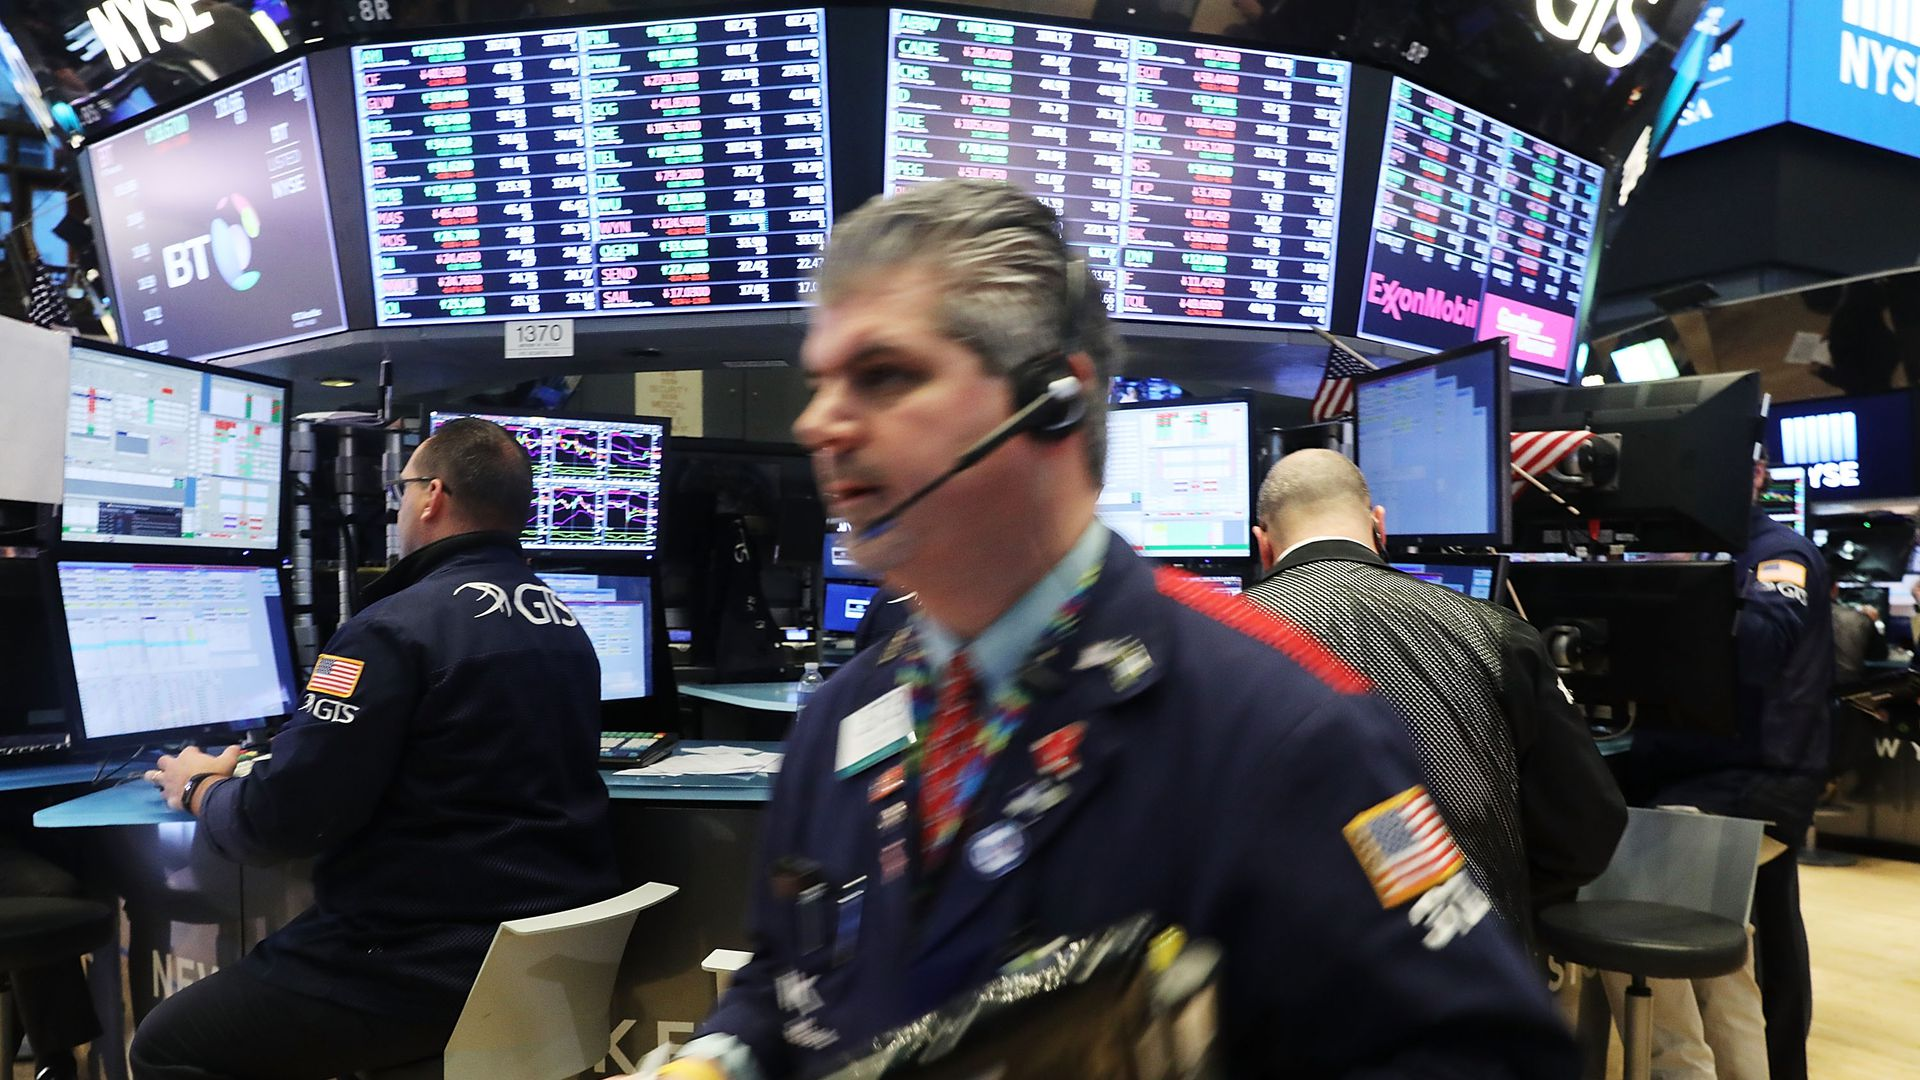 Brokers run around on the Wall Street stock exchange floor